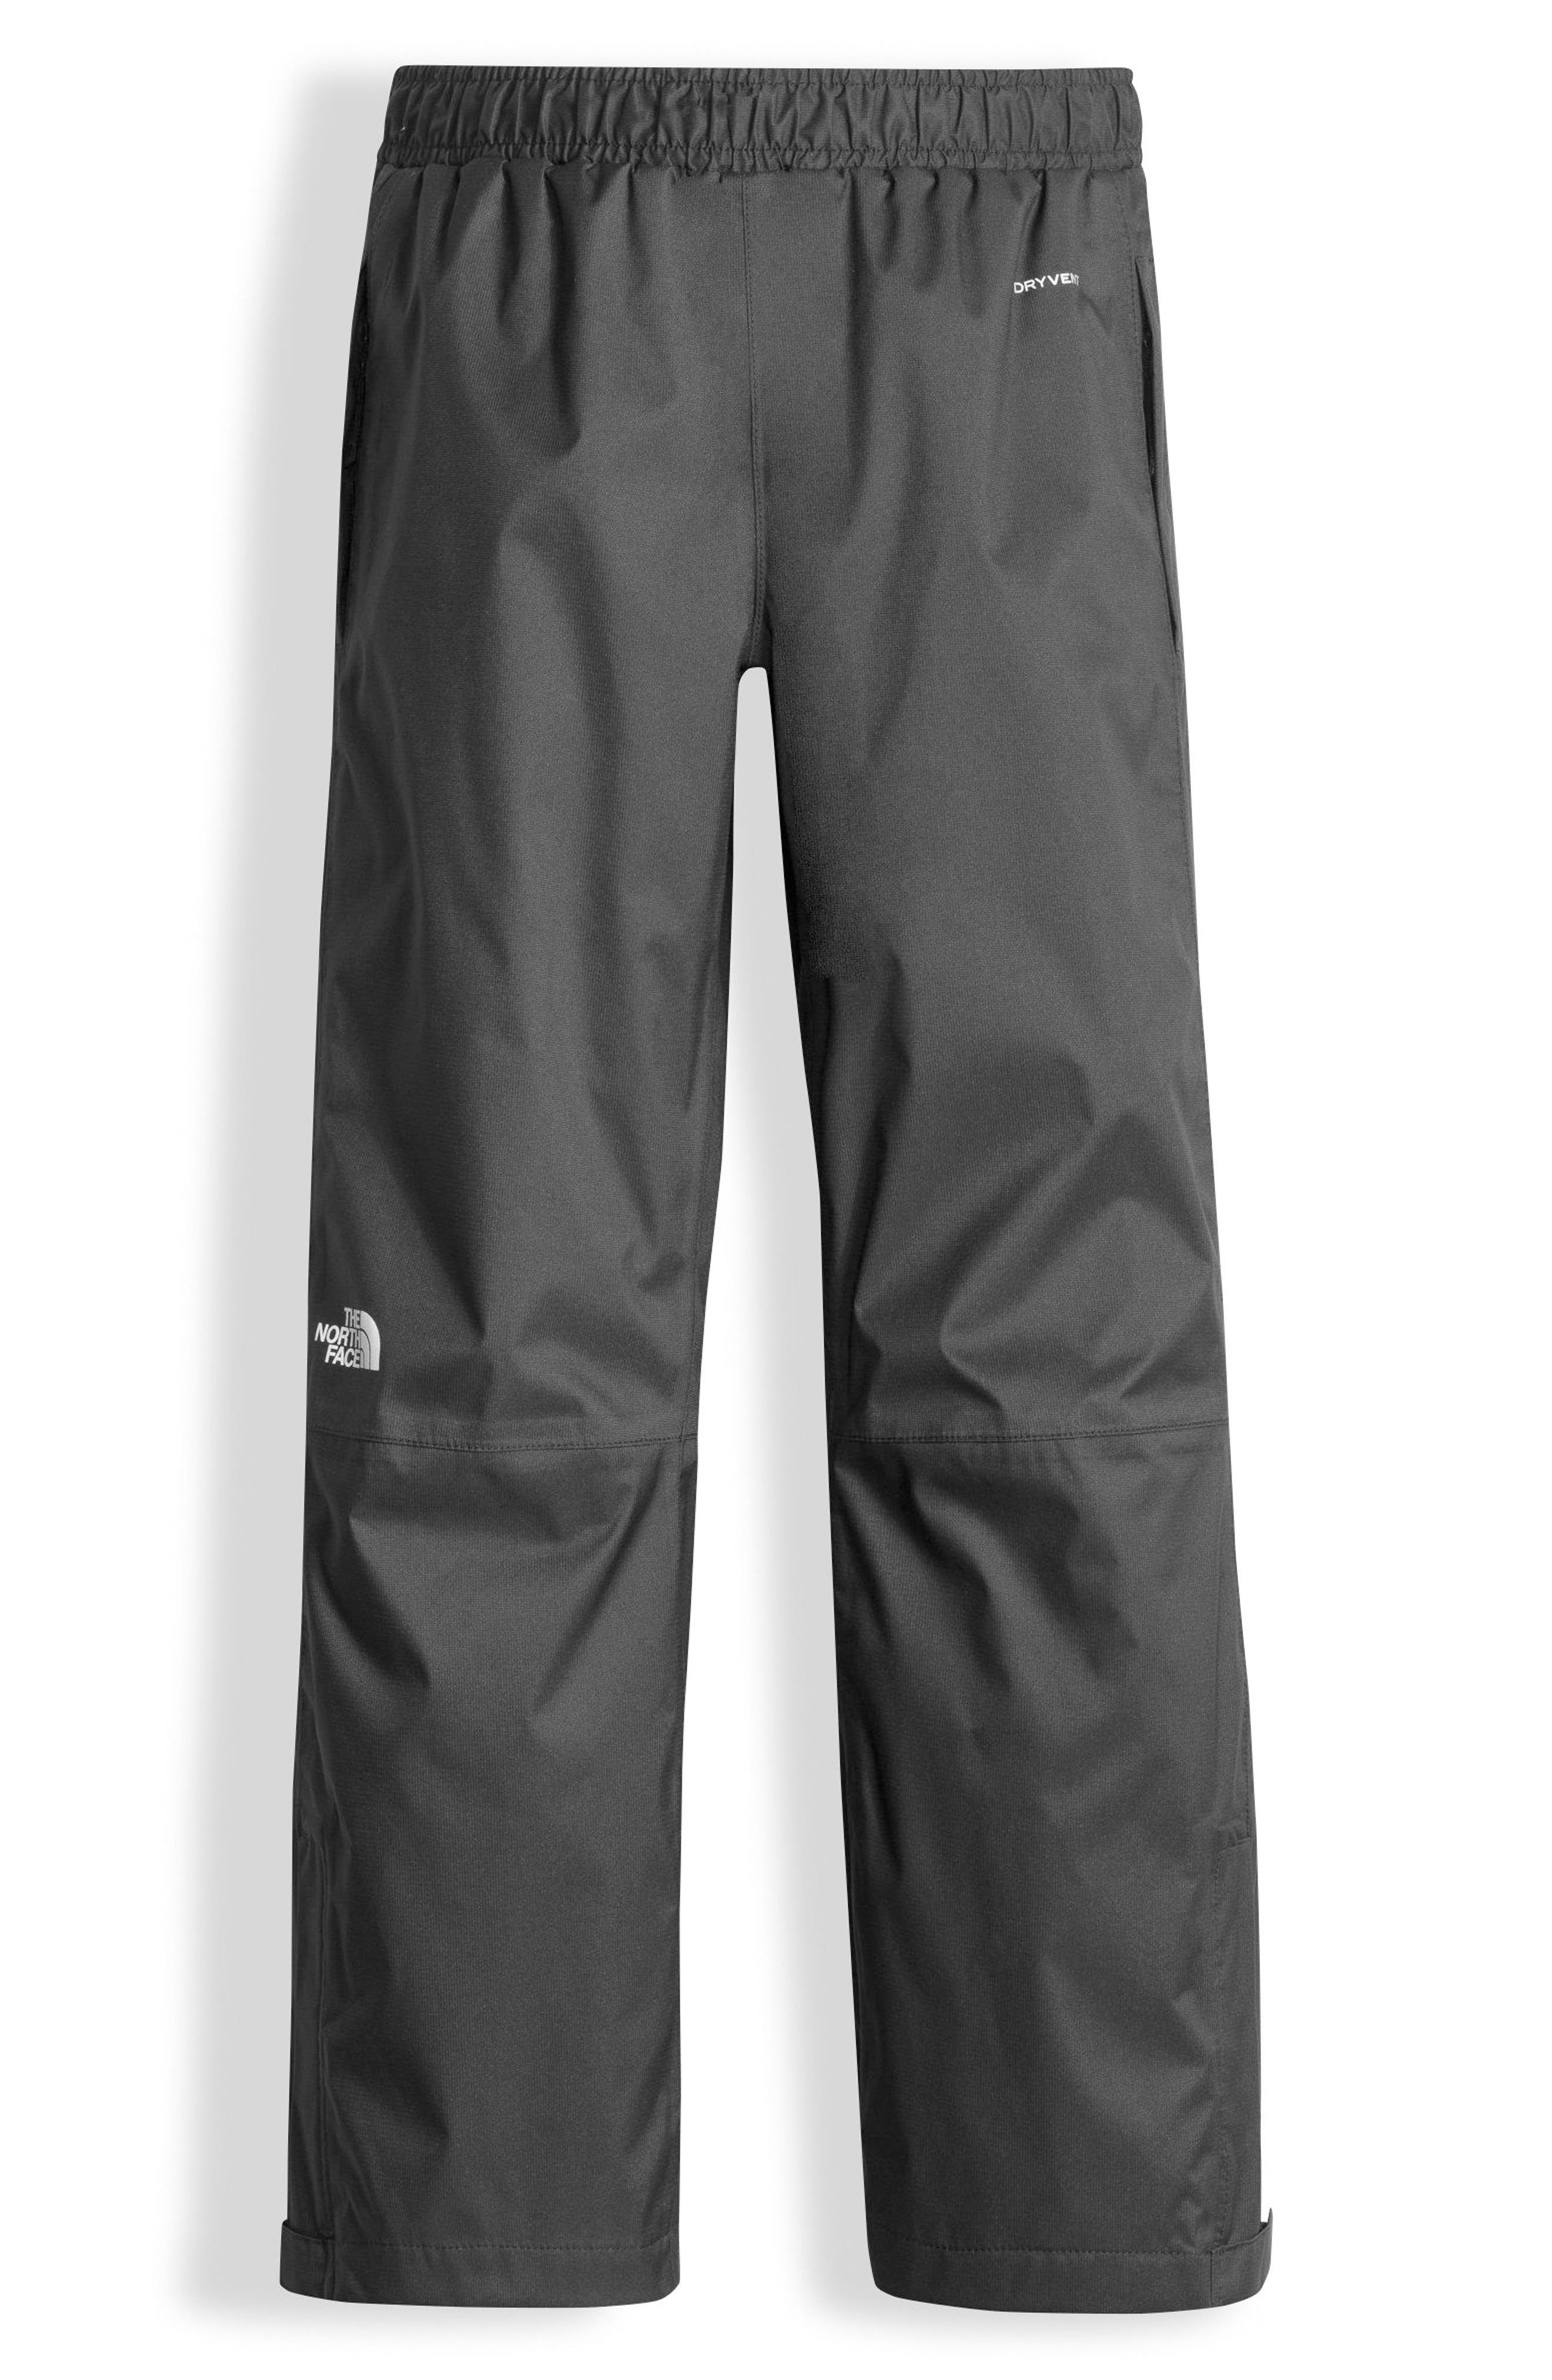 THE NORTH FACE Resolve Waterproof Rain Pants, Main, color, GRAPHITE GREY